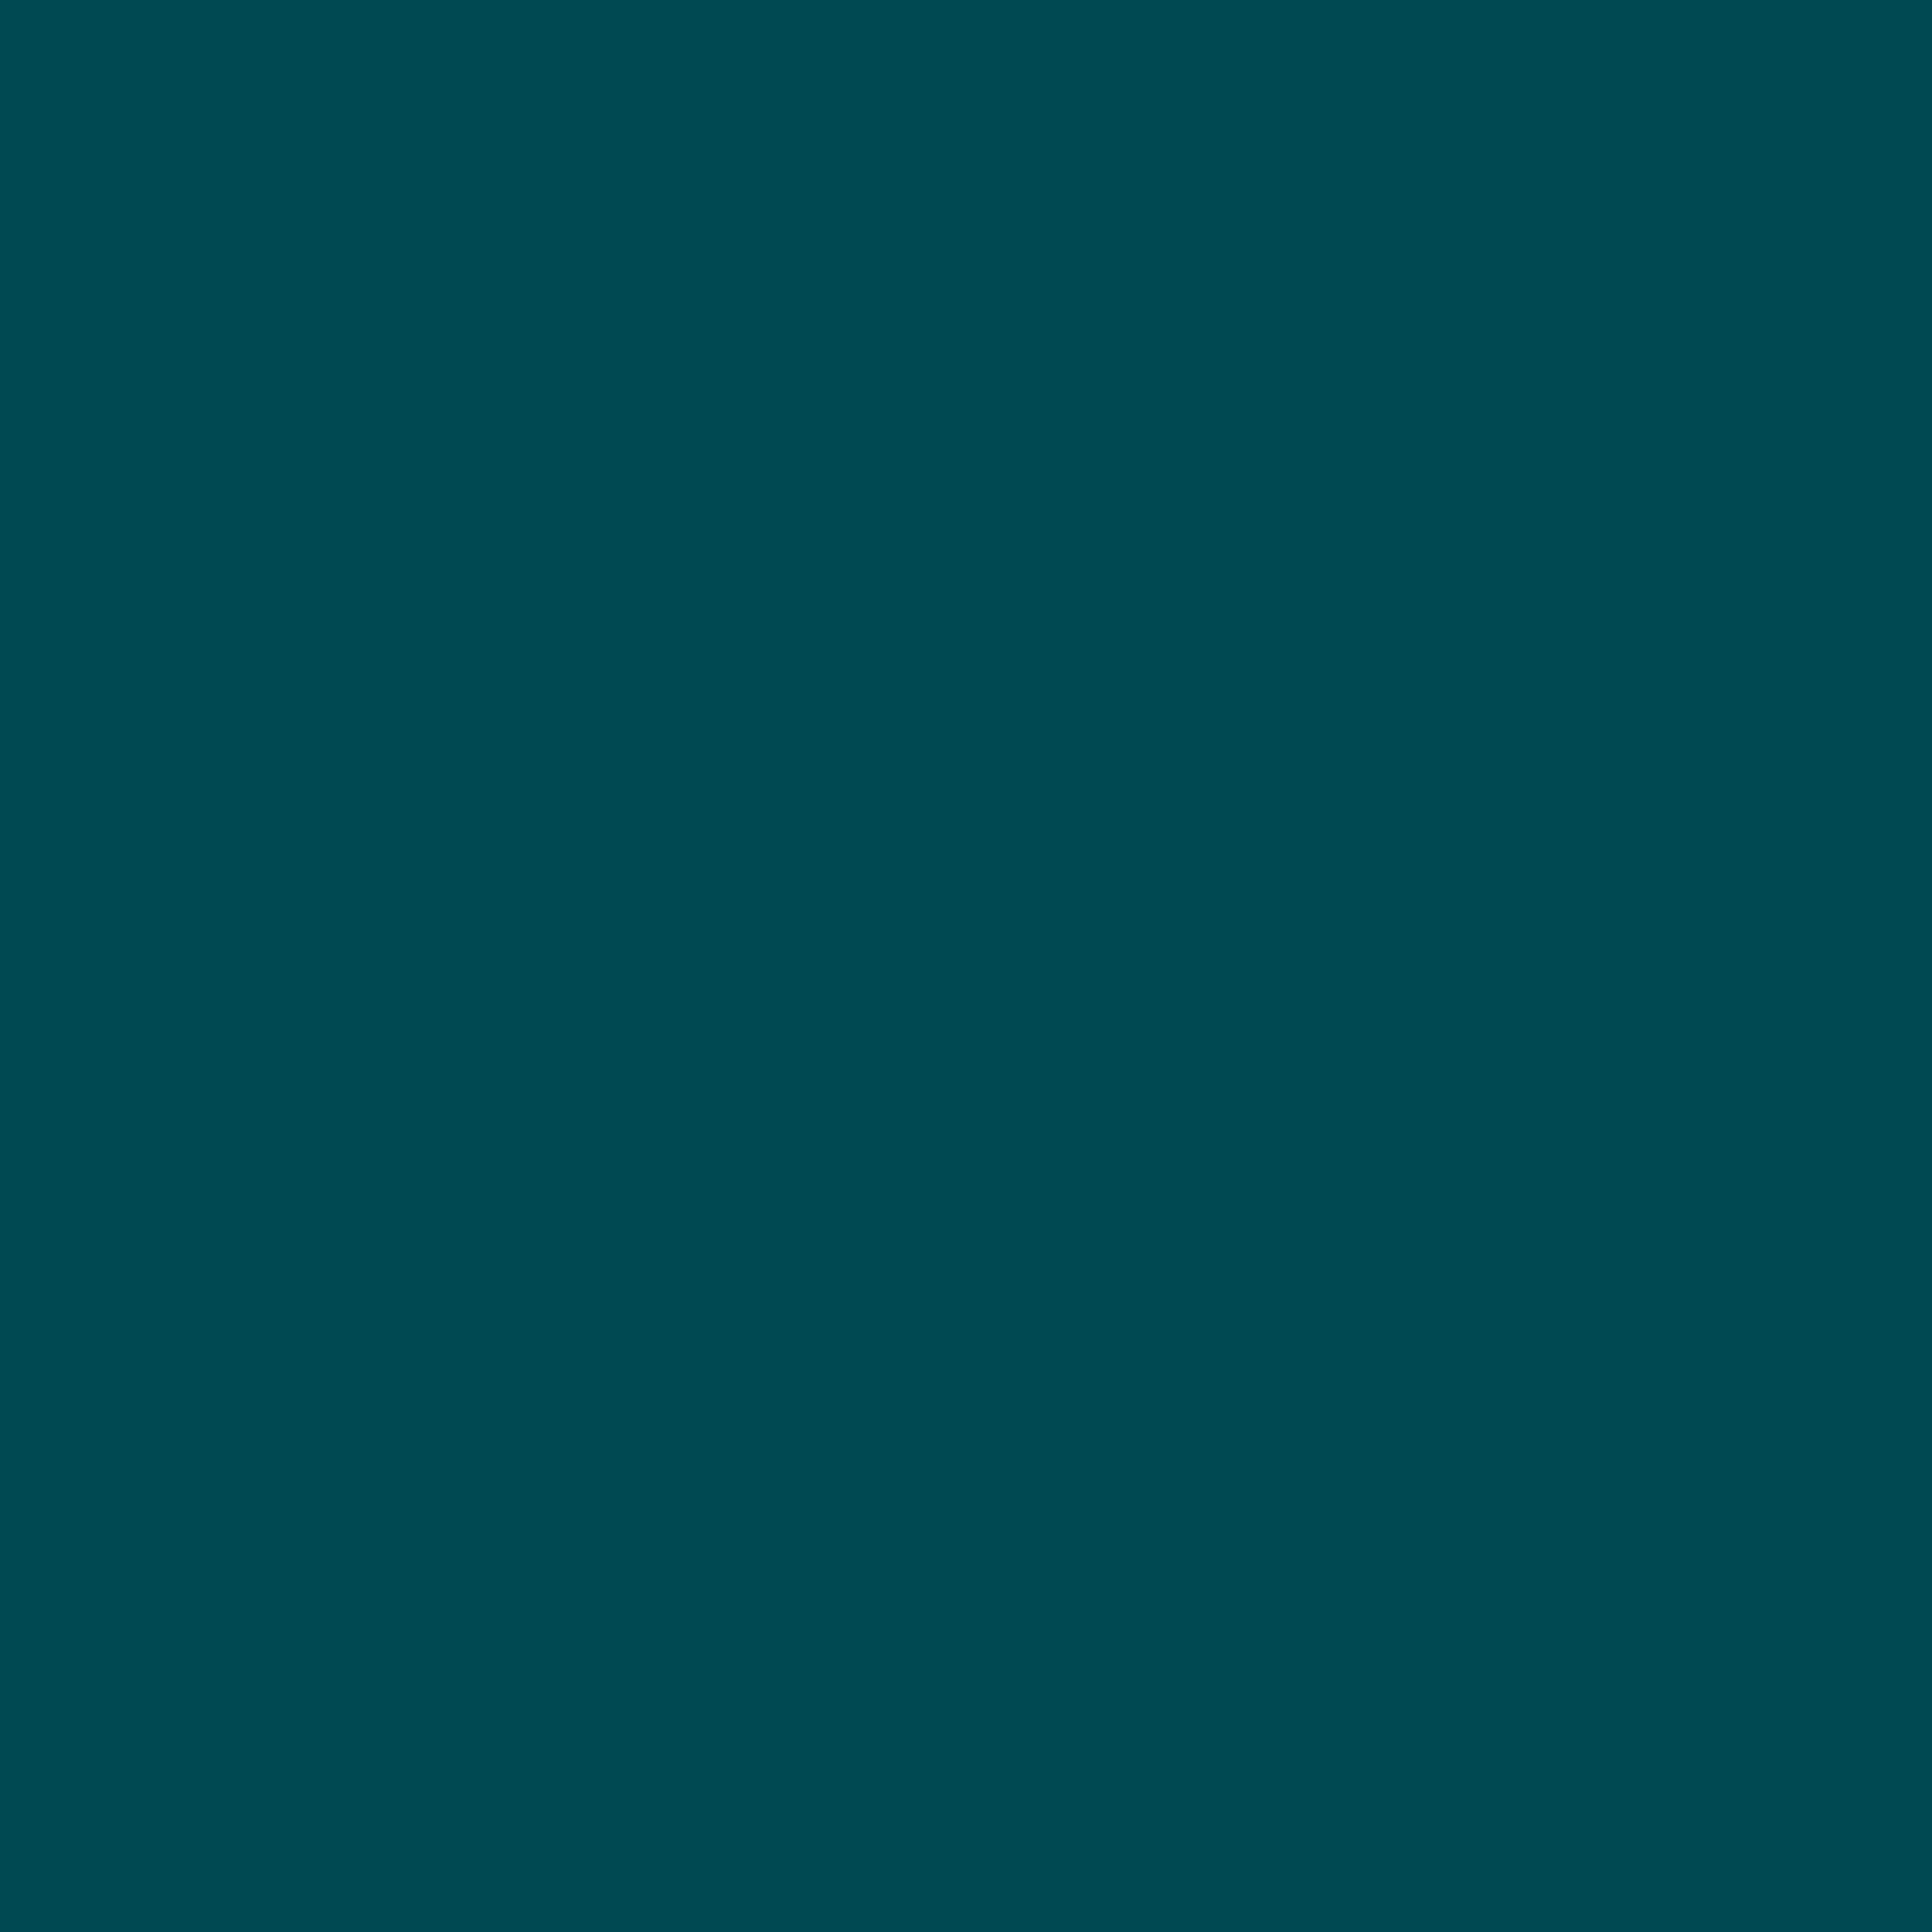 2732x2732 Midnight Green Solid Color Background